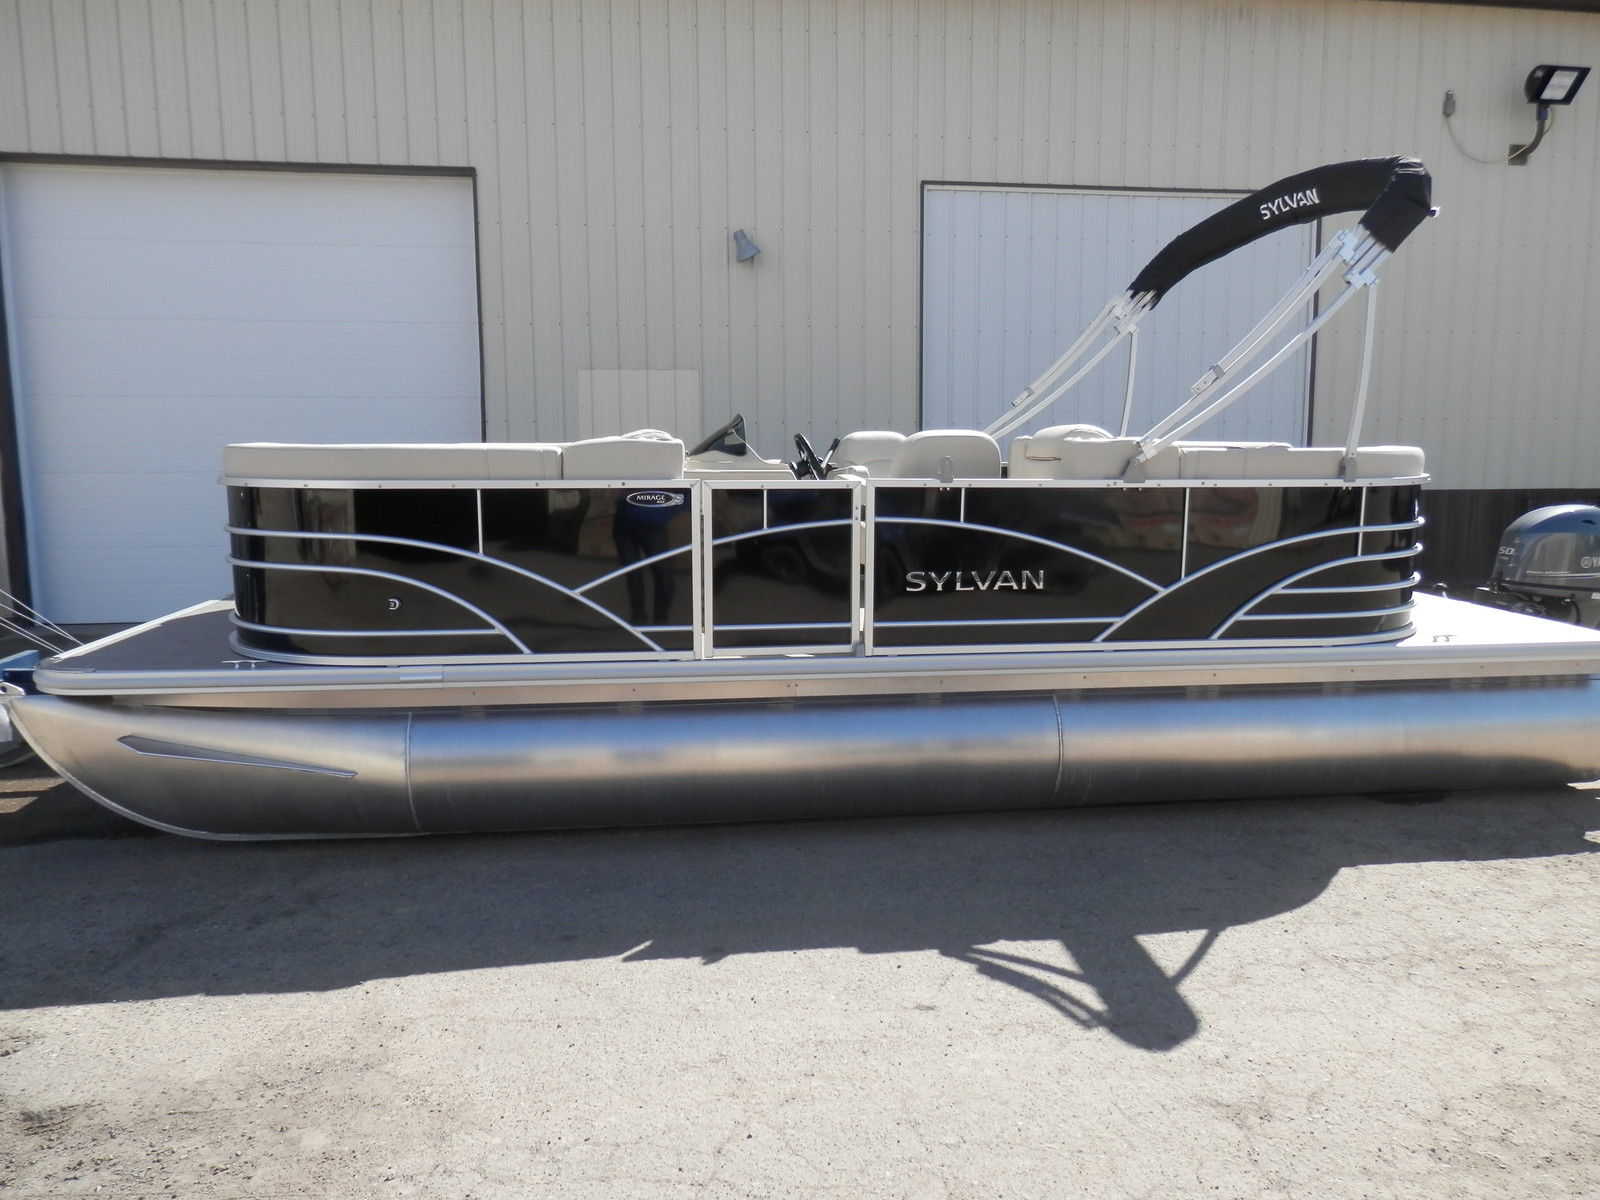 Sylvan 822 lz 2016 for sale for 19 999 boats from for Syvlan